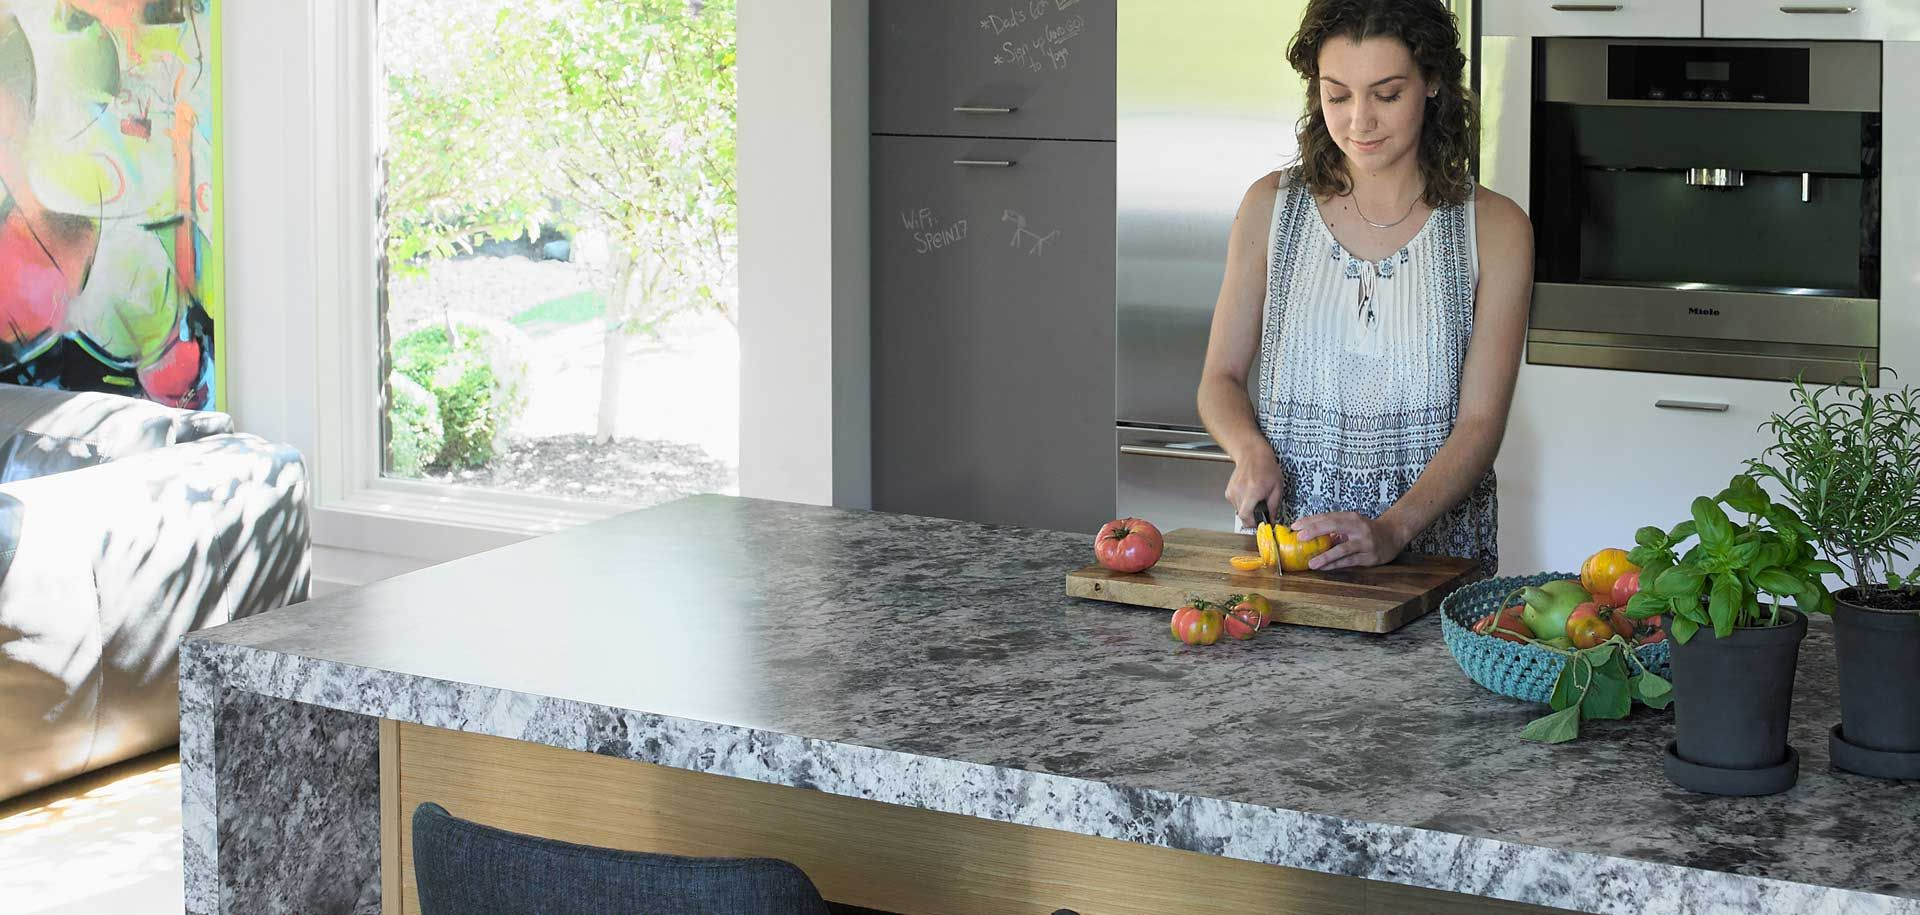 180fx By Formica Group 9305 Silver Flower Granite Formica Writable Surfaces 3036 Gray Chalkable Formica Writable Egg Rolls Affordable Remodeling Chili Sauce